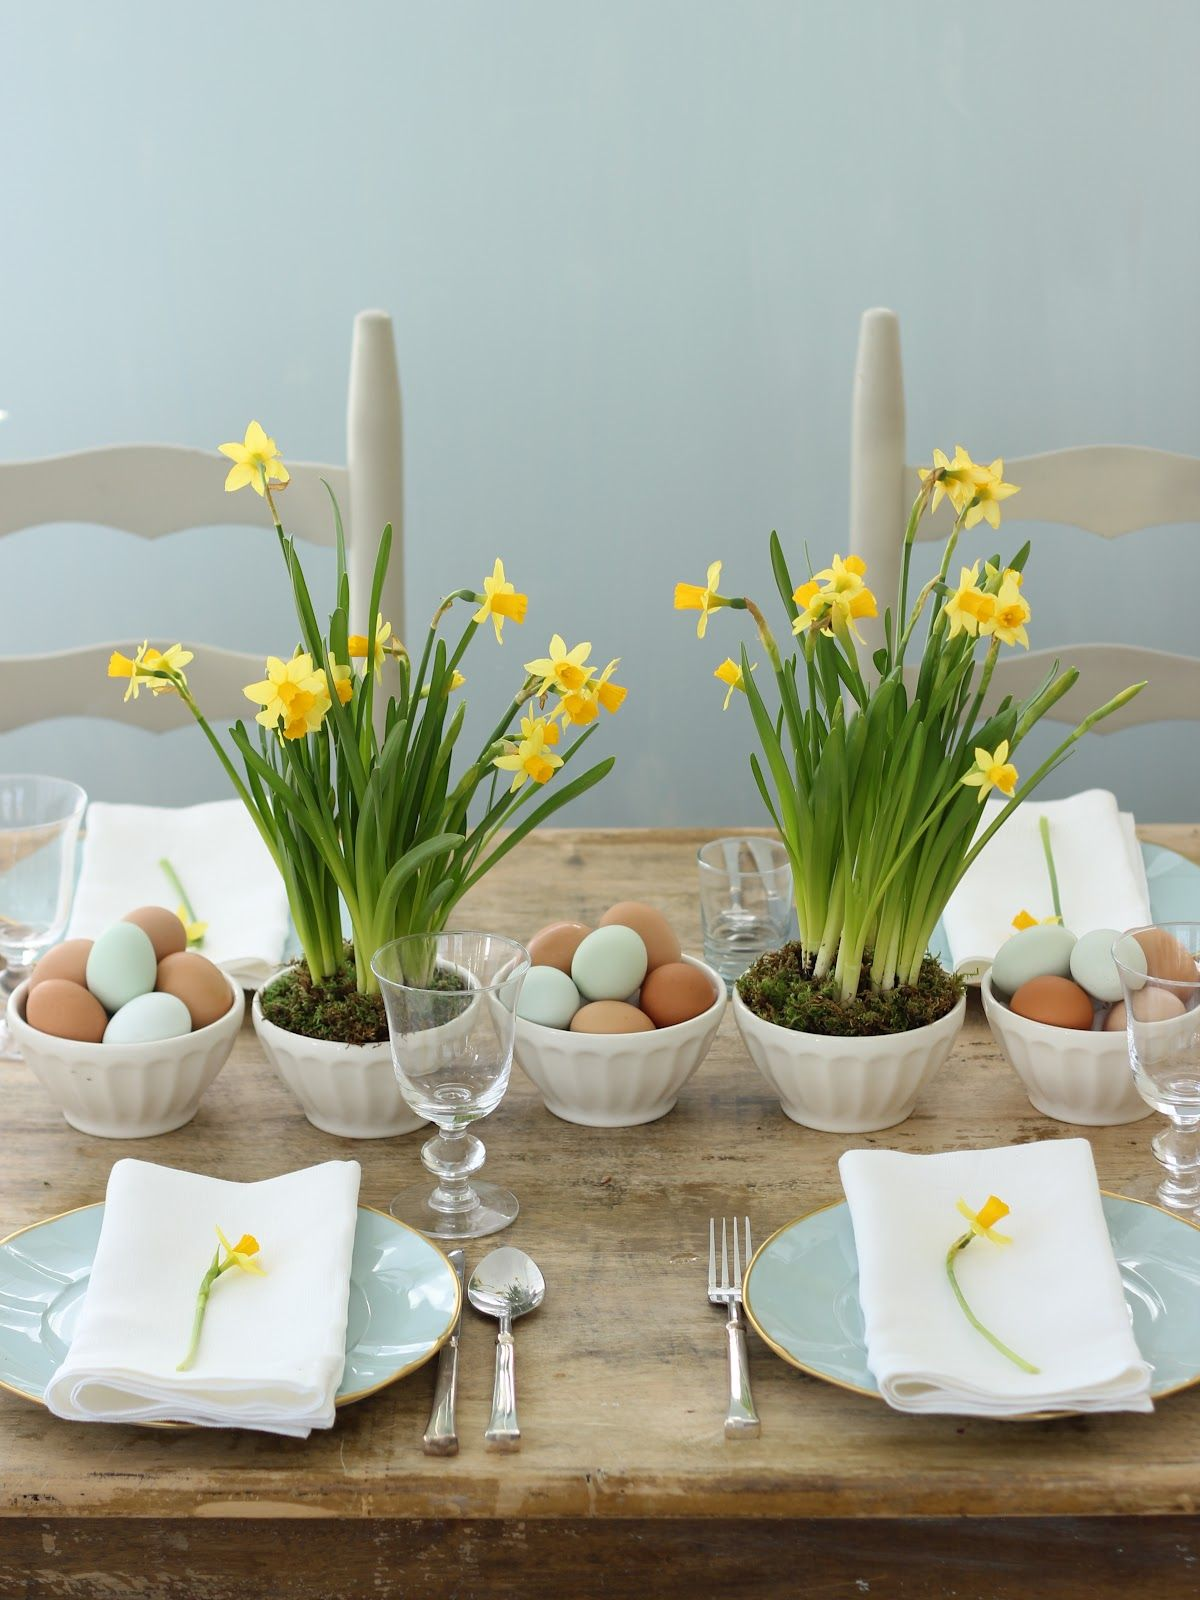 A Simple Tabletop With Miniature Daffodils In Latte Bowls Easter CenterpieceEaster DecorEaster